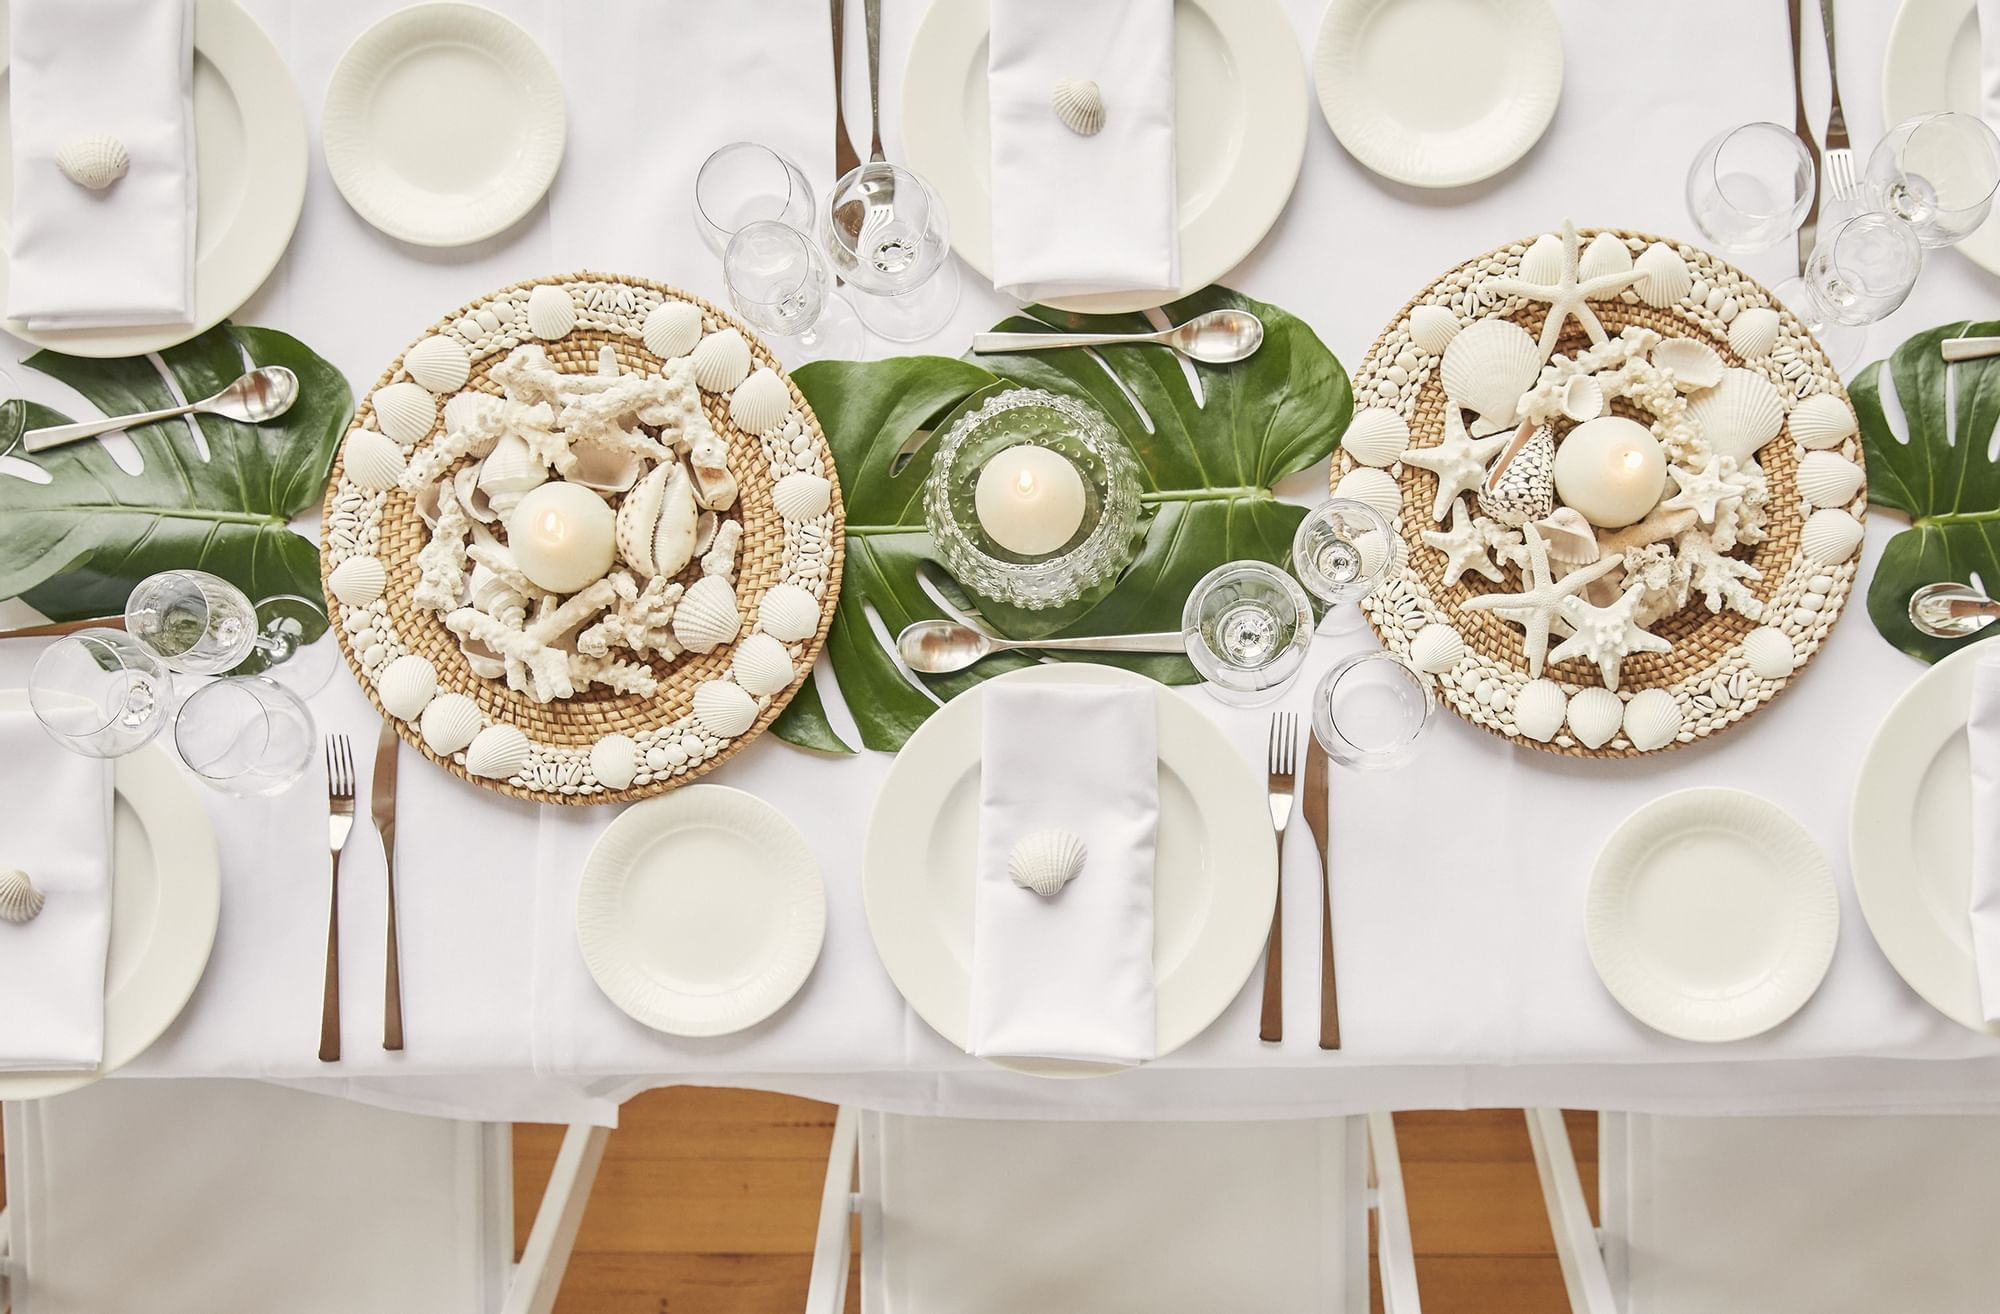 Table decors with seashells at Daydream Island Resort